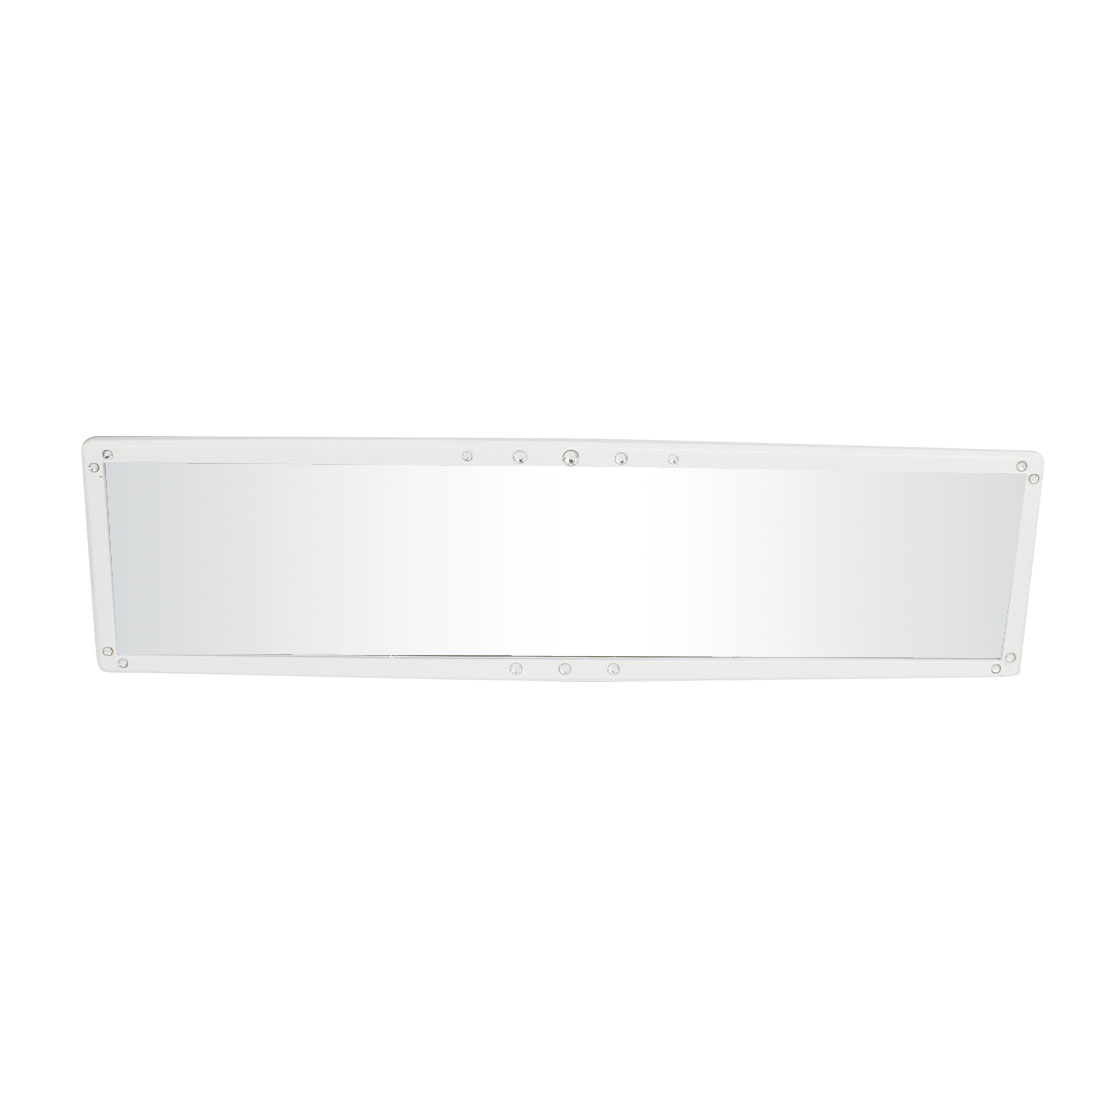 280mm x 60mm White Plastic Frame Clip On Car Interior Rear View Mirror